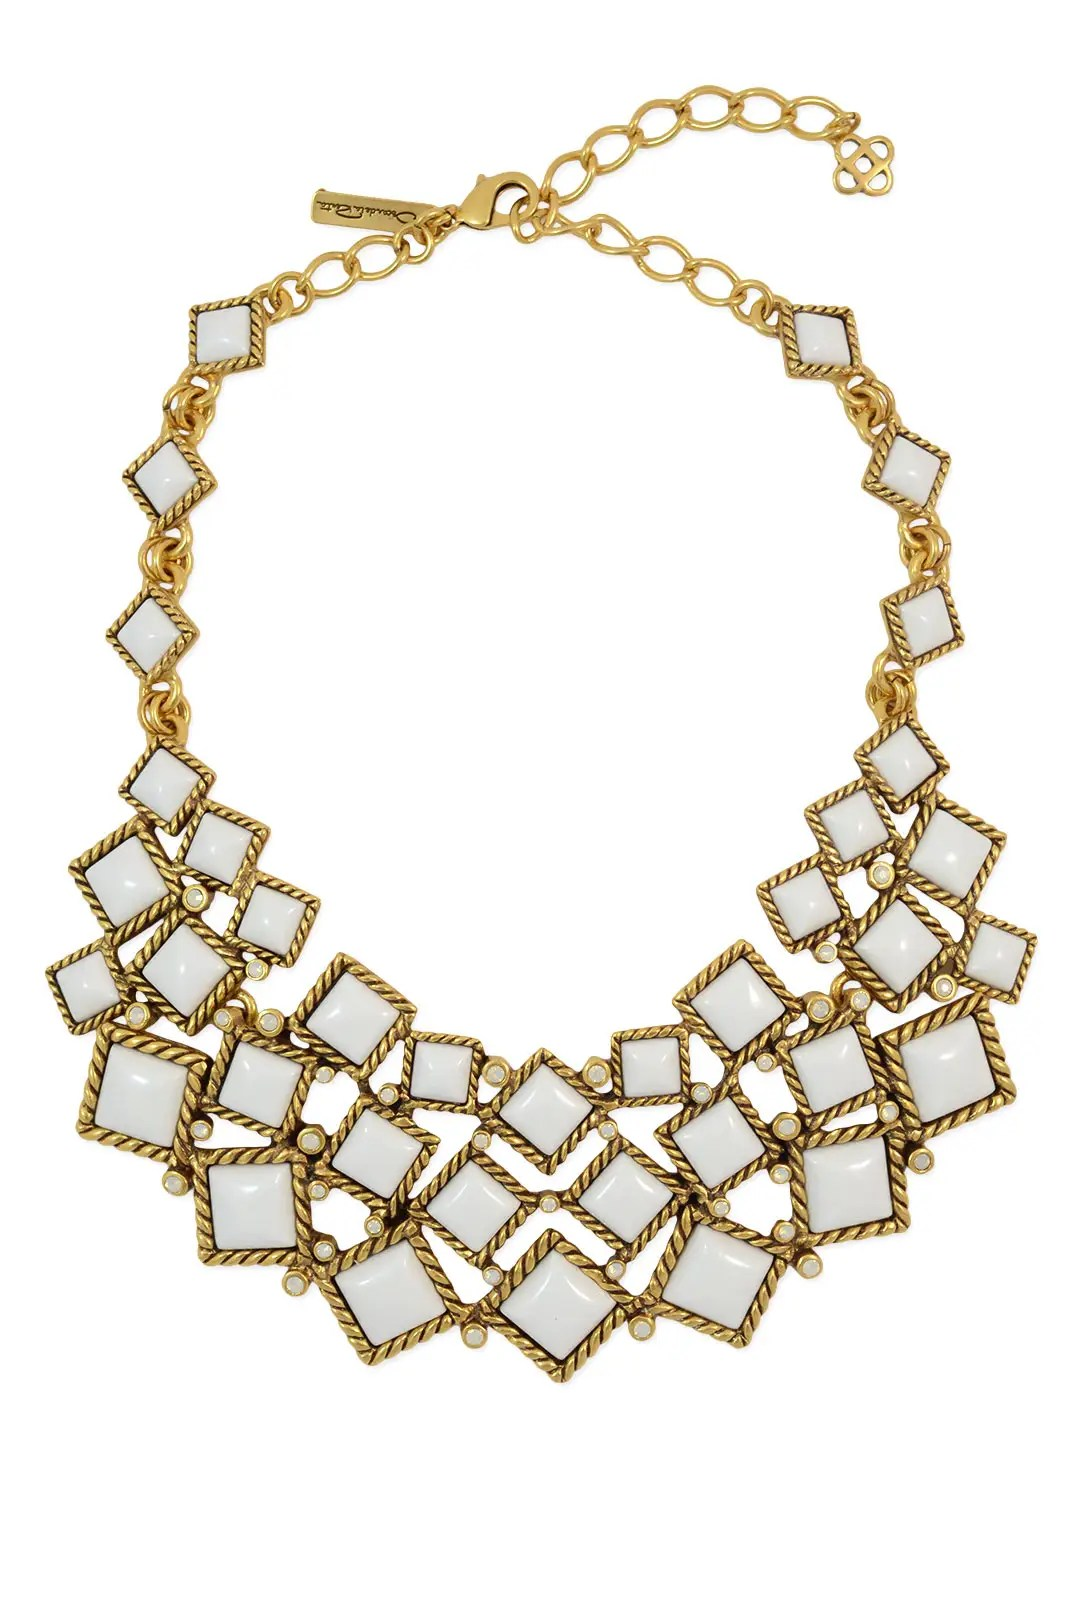 Rent the Runway Presents Oscar de la Renta Jewelry